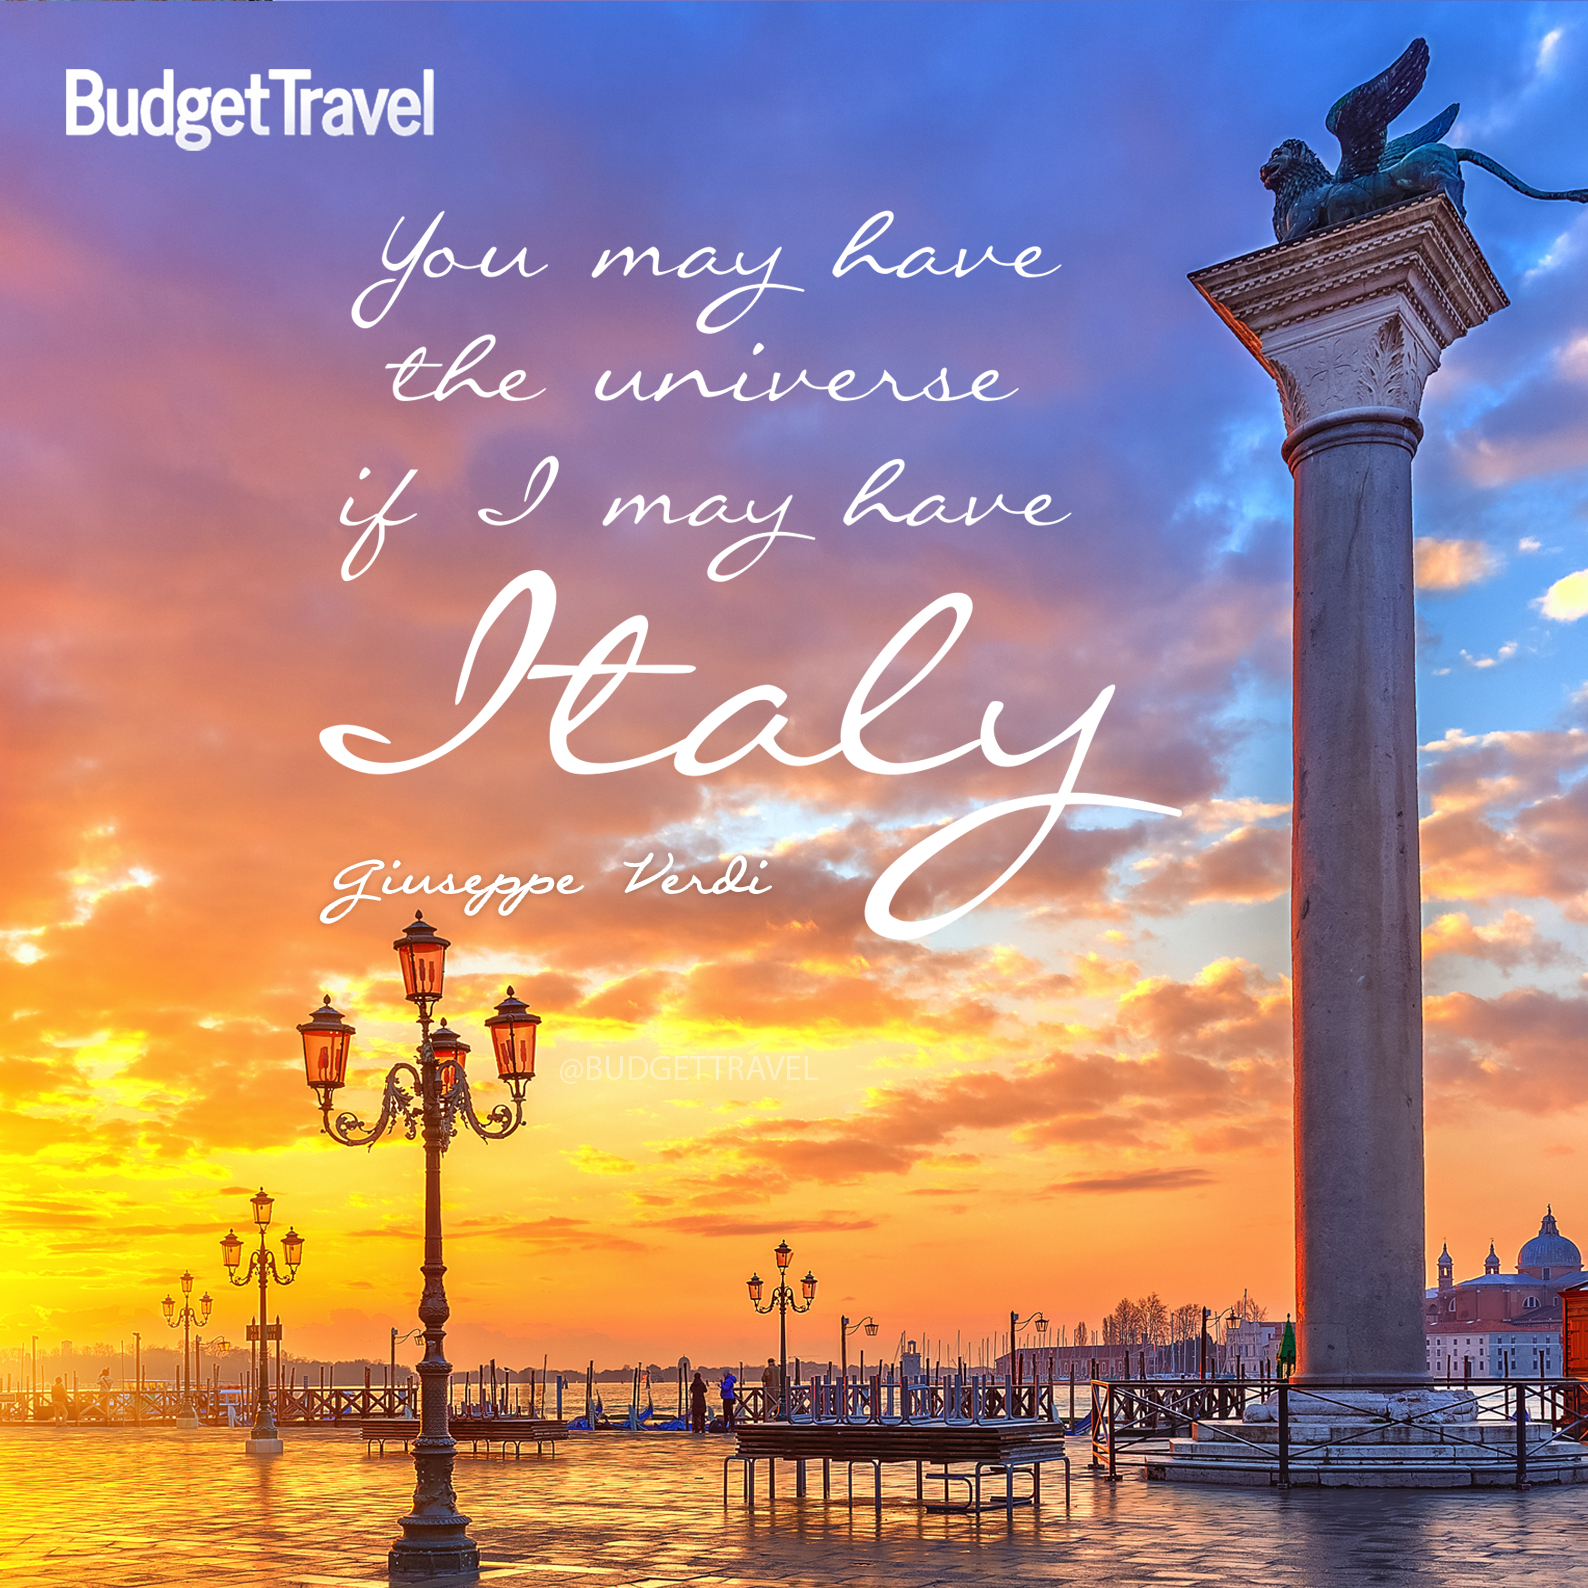 20 Of The Most Inspiring Travel Quotes Of All Time: You-may-have-italy-travel-quote-472015-192937_original